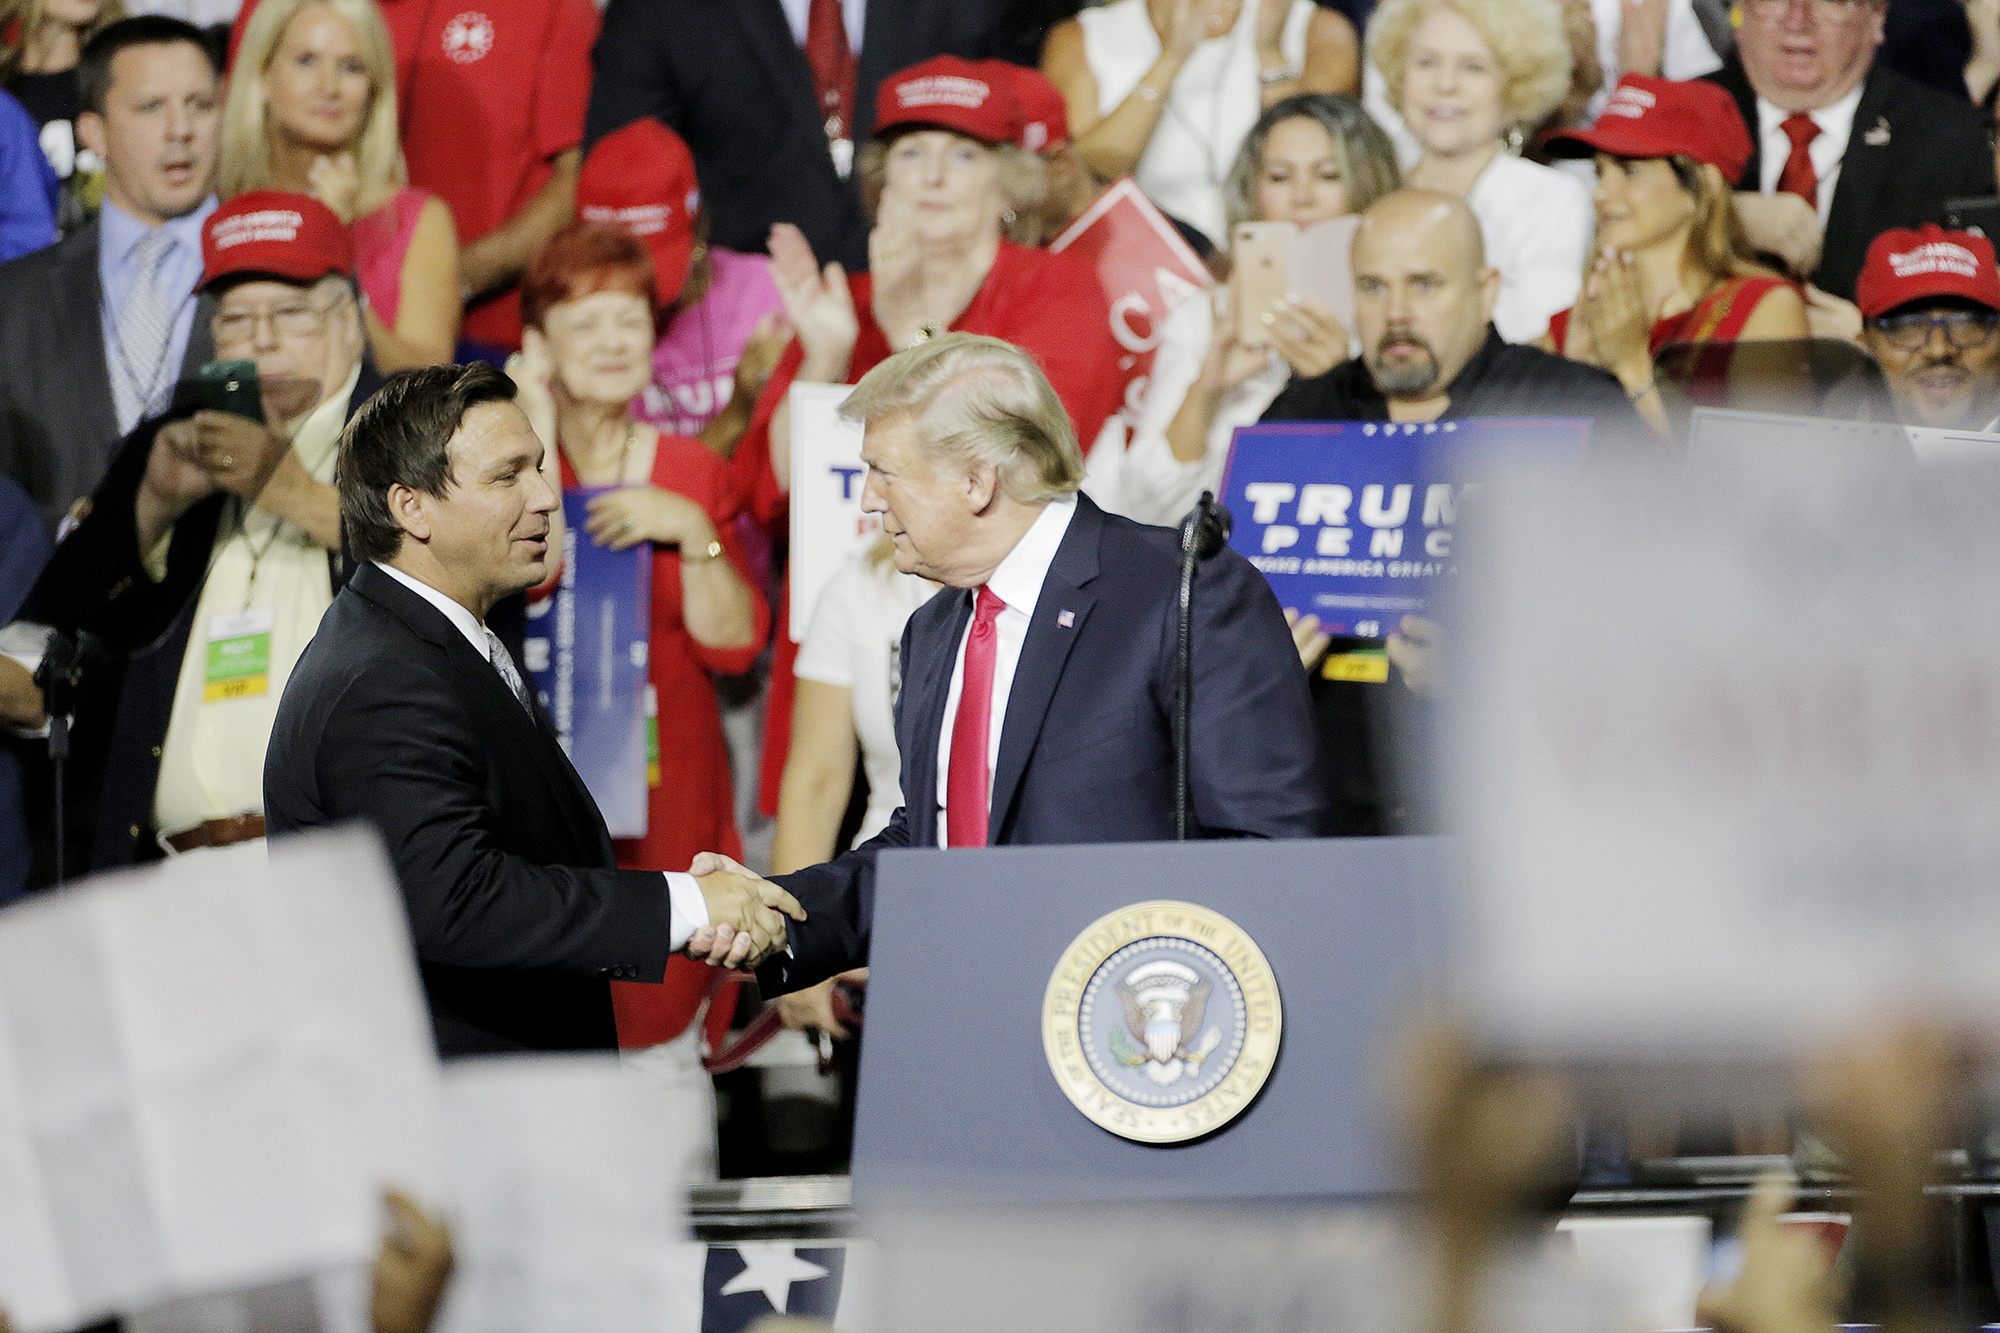 New DeSantis campaign ad catches eyeballs ahead of Trump's Florida rally